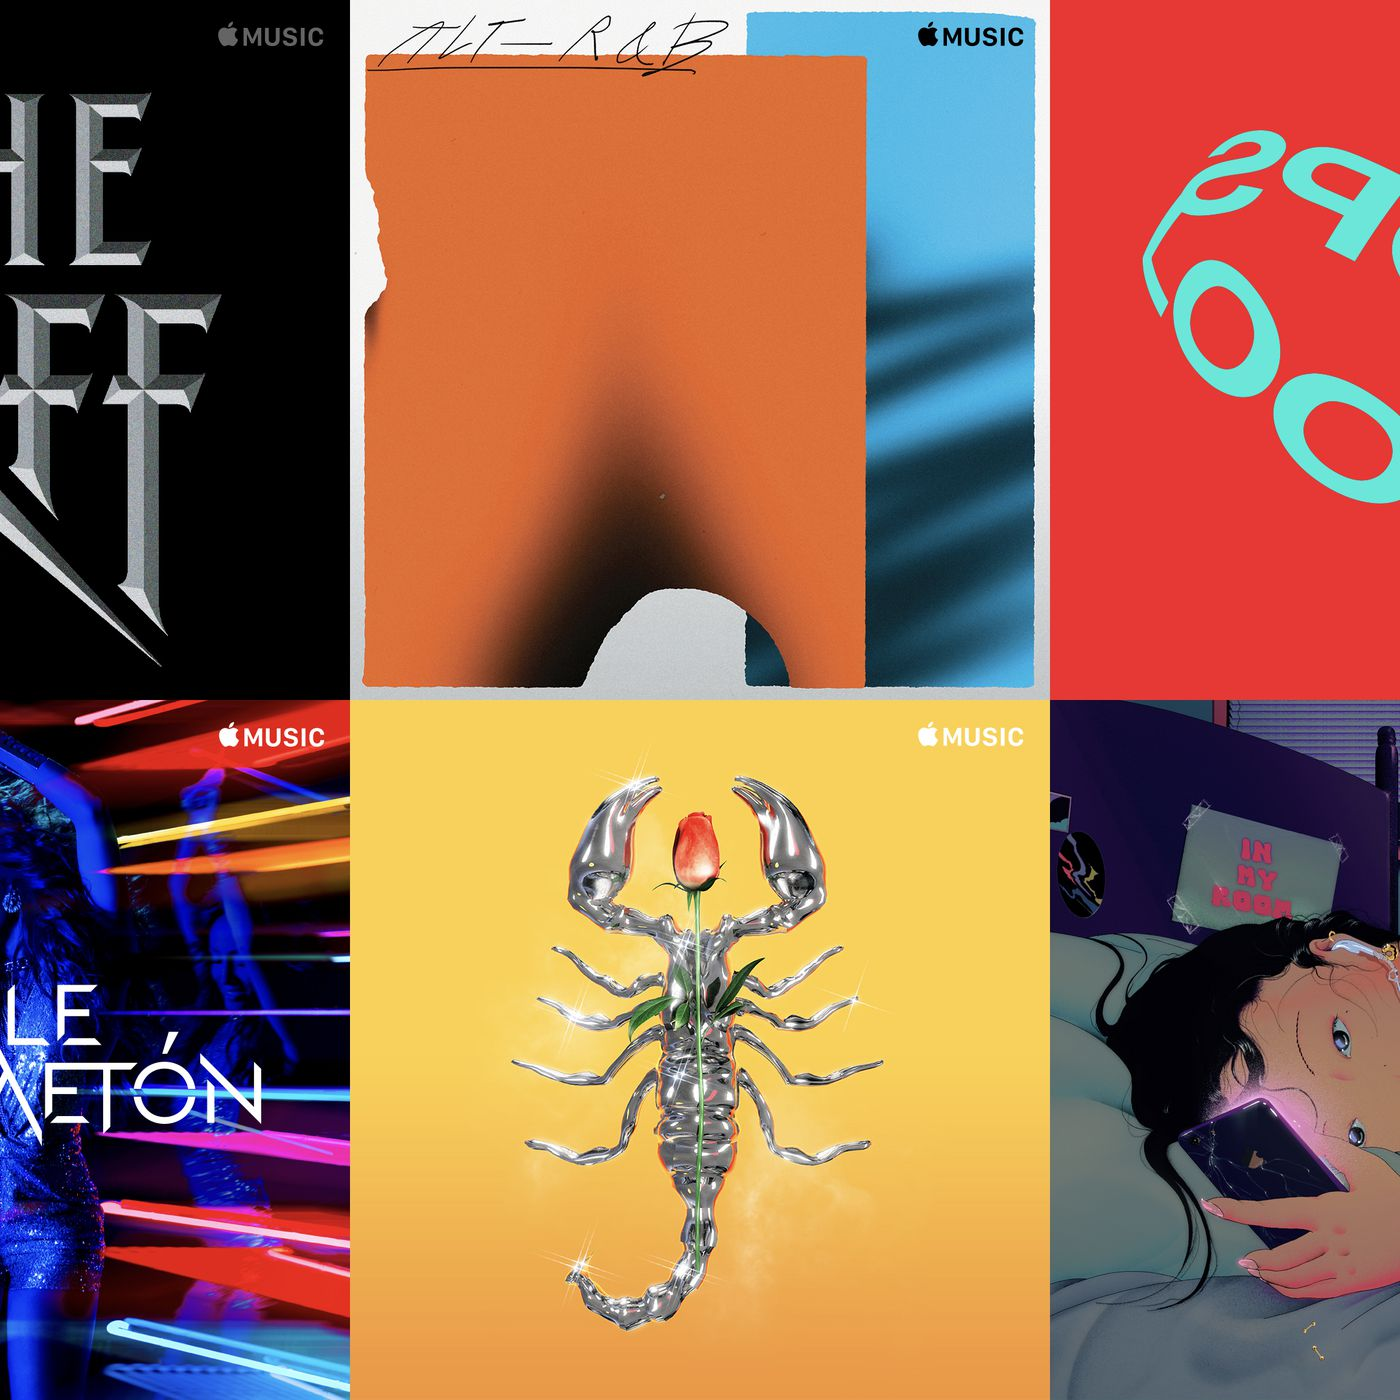 Apple Has Been Quietly Hiring Iconic Artists To Design Apple Music Playlist Covers The Verge